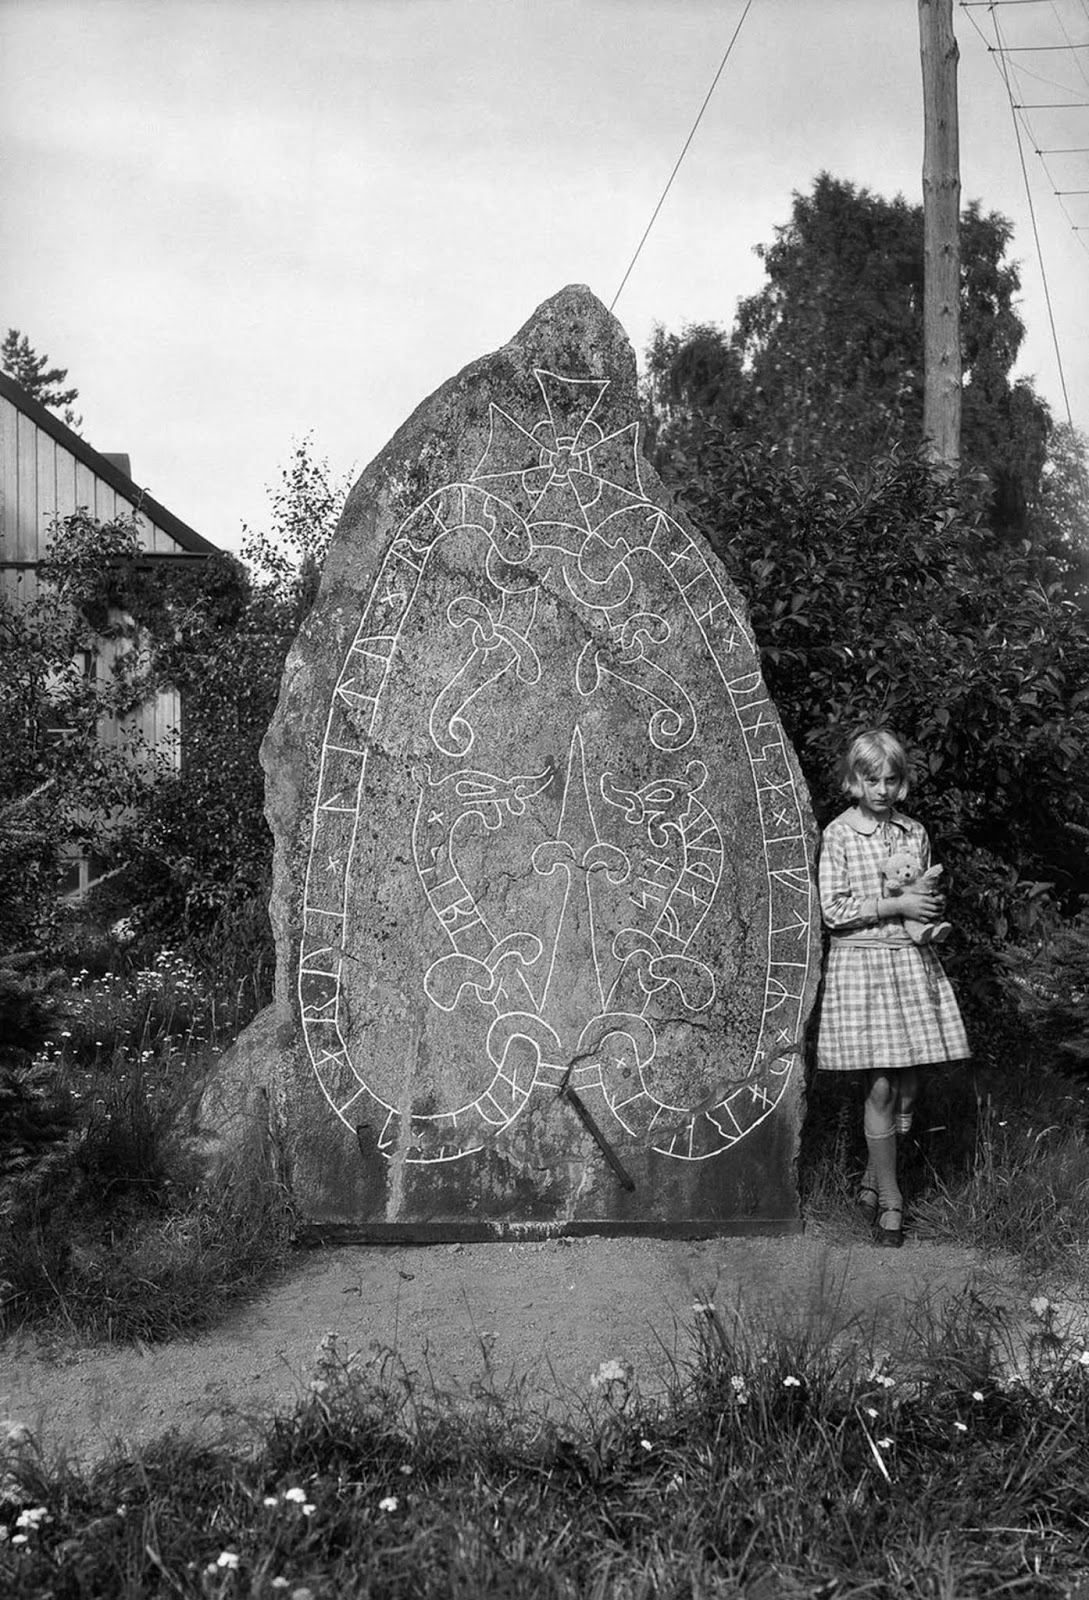 A girl with a teddy bear at a runestone in Söderby, Botkyrka. The inscription reads,